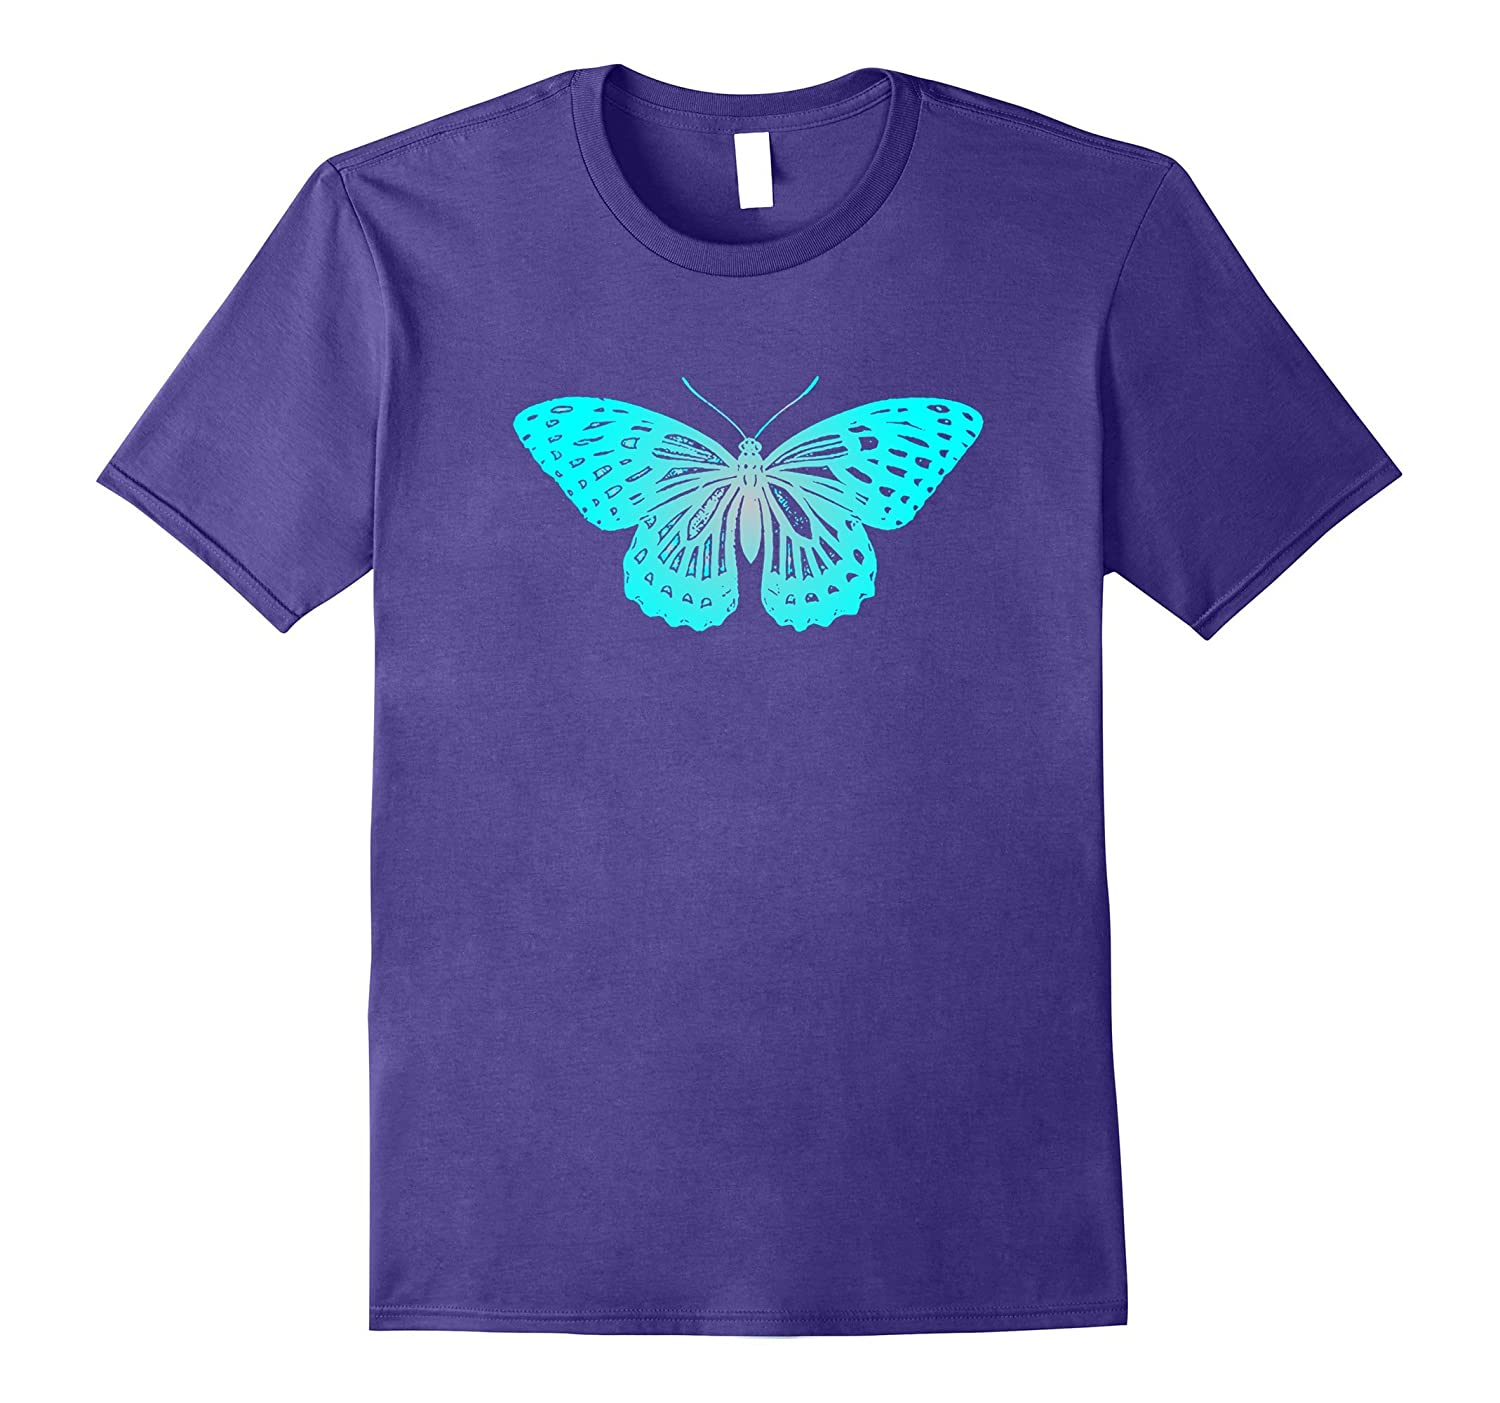 Turquoise Butterfly T-Shirt For Nature Lovers Novelty-Vaci